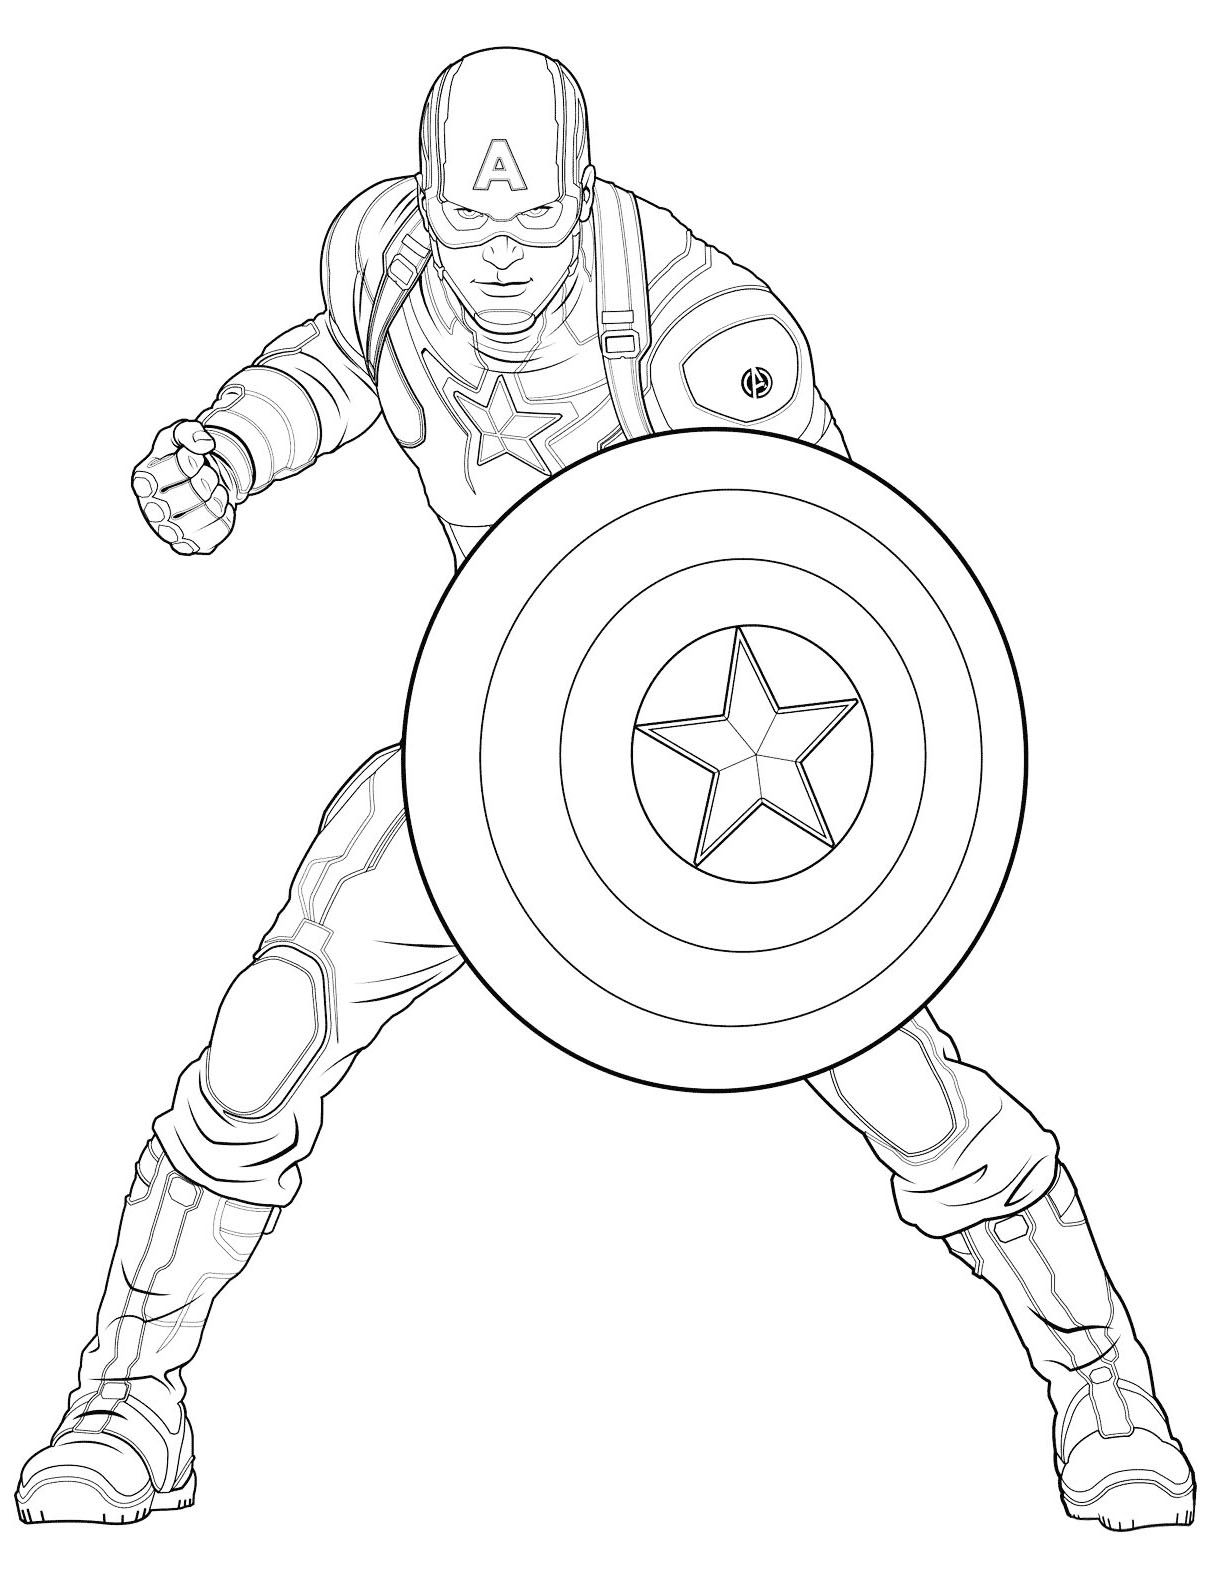 Easy Free Captain America Coloring Page To Download Avengers Coloring Pages Superhero Coloring Pages Captain America Coloring Pages